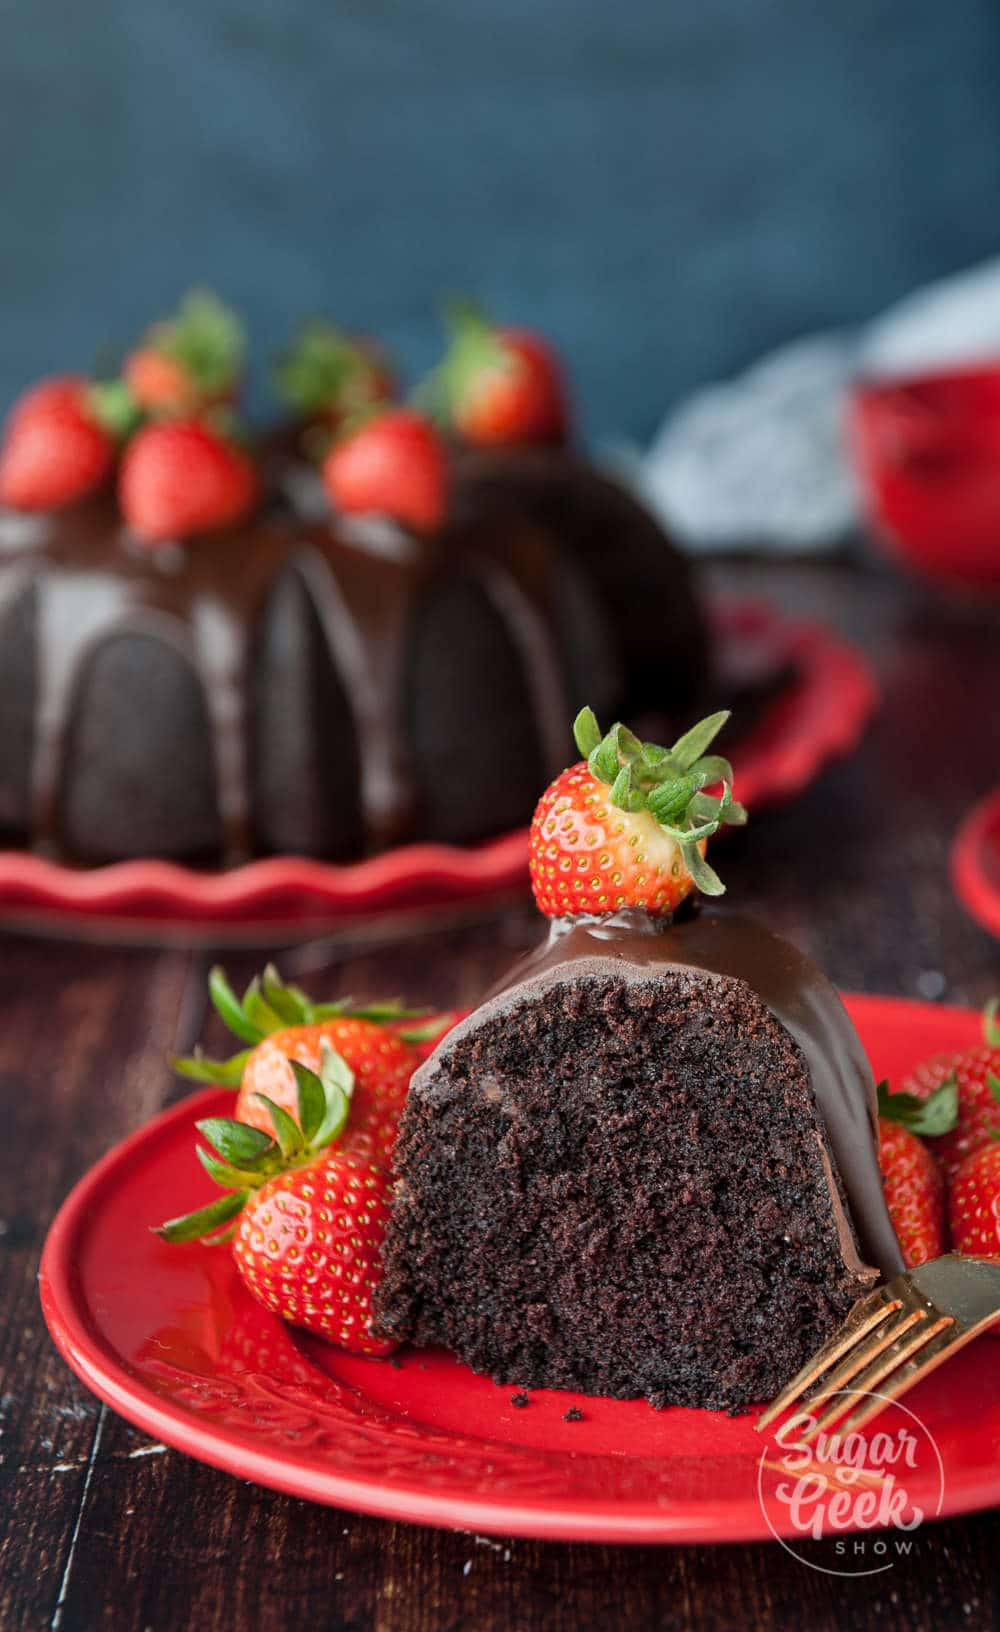 close up of a slice of chocolate bundt cake with ganache and fresh strawberries. Bundt cake in the background